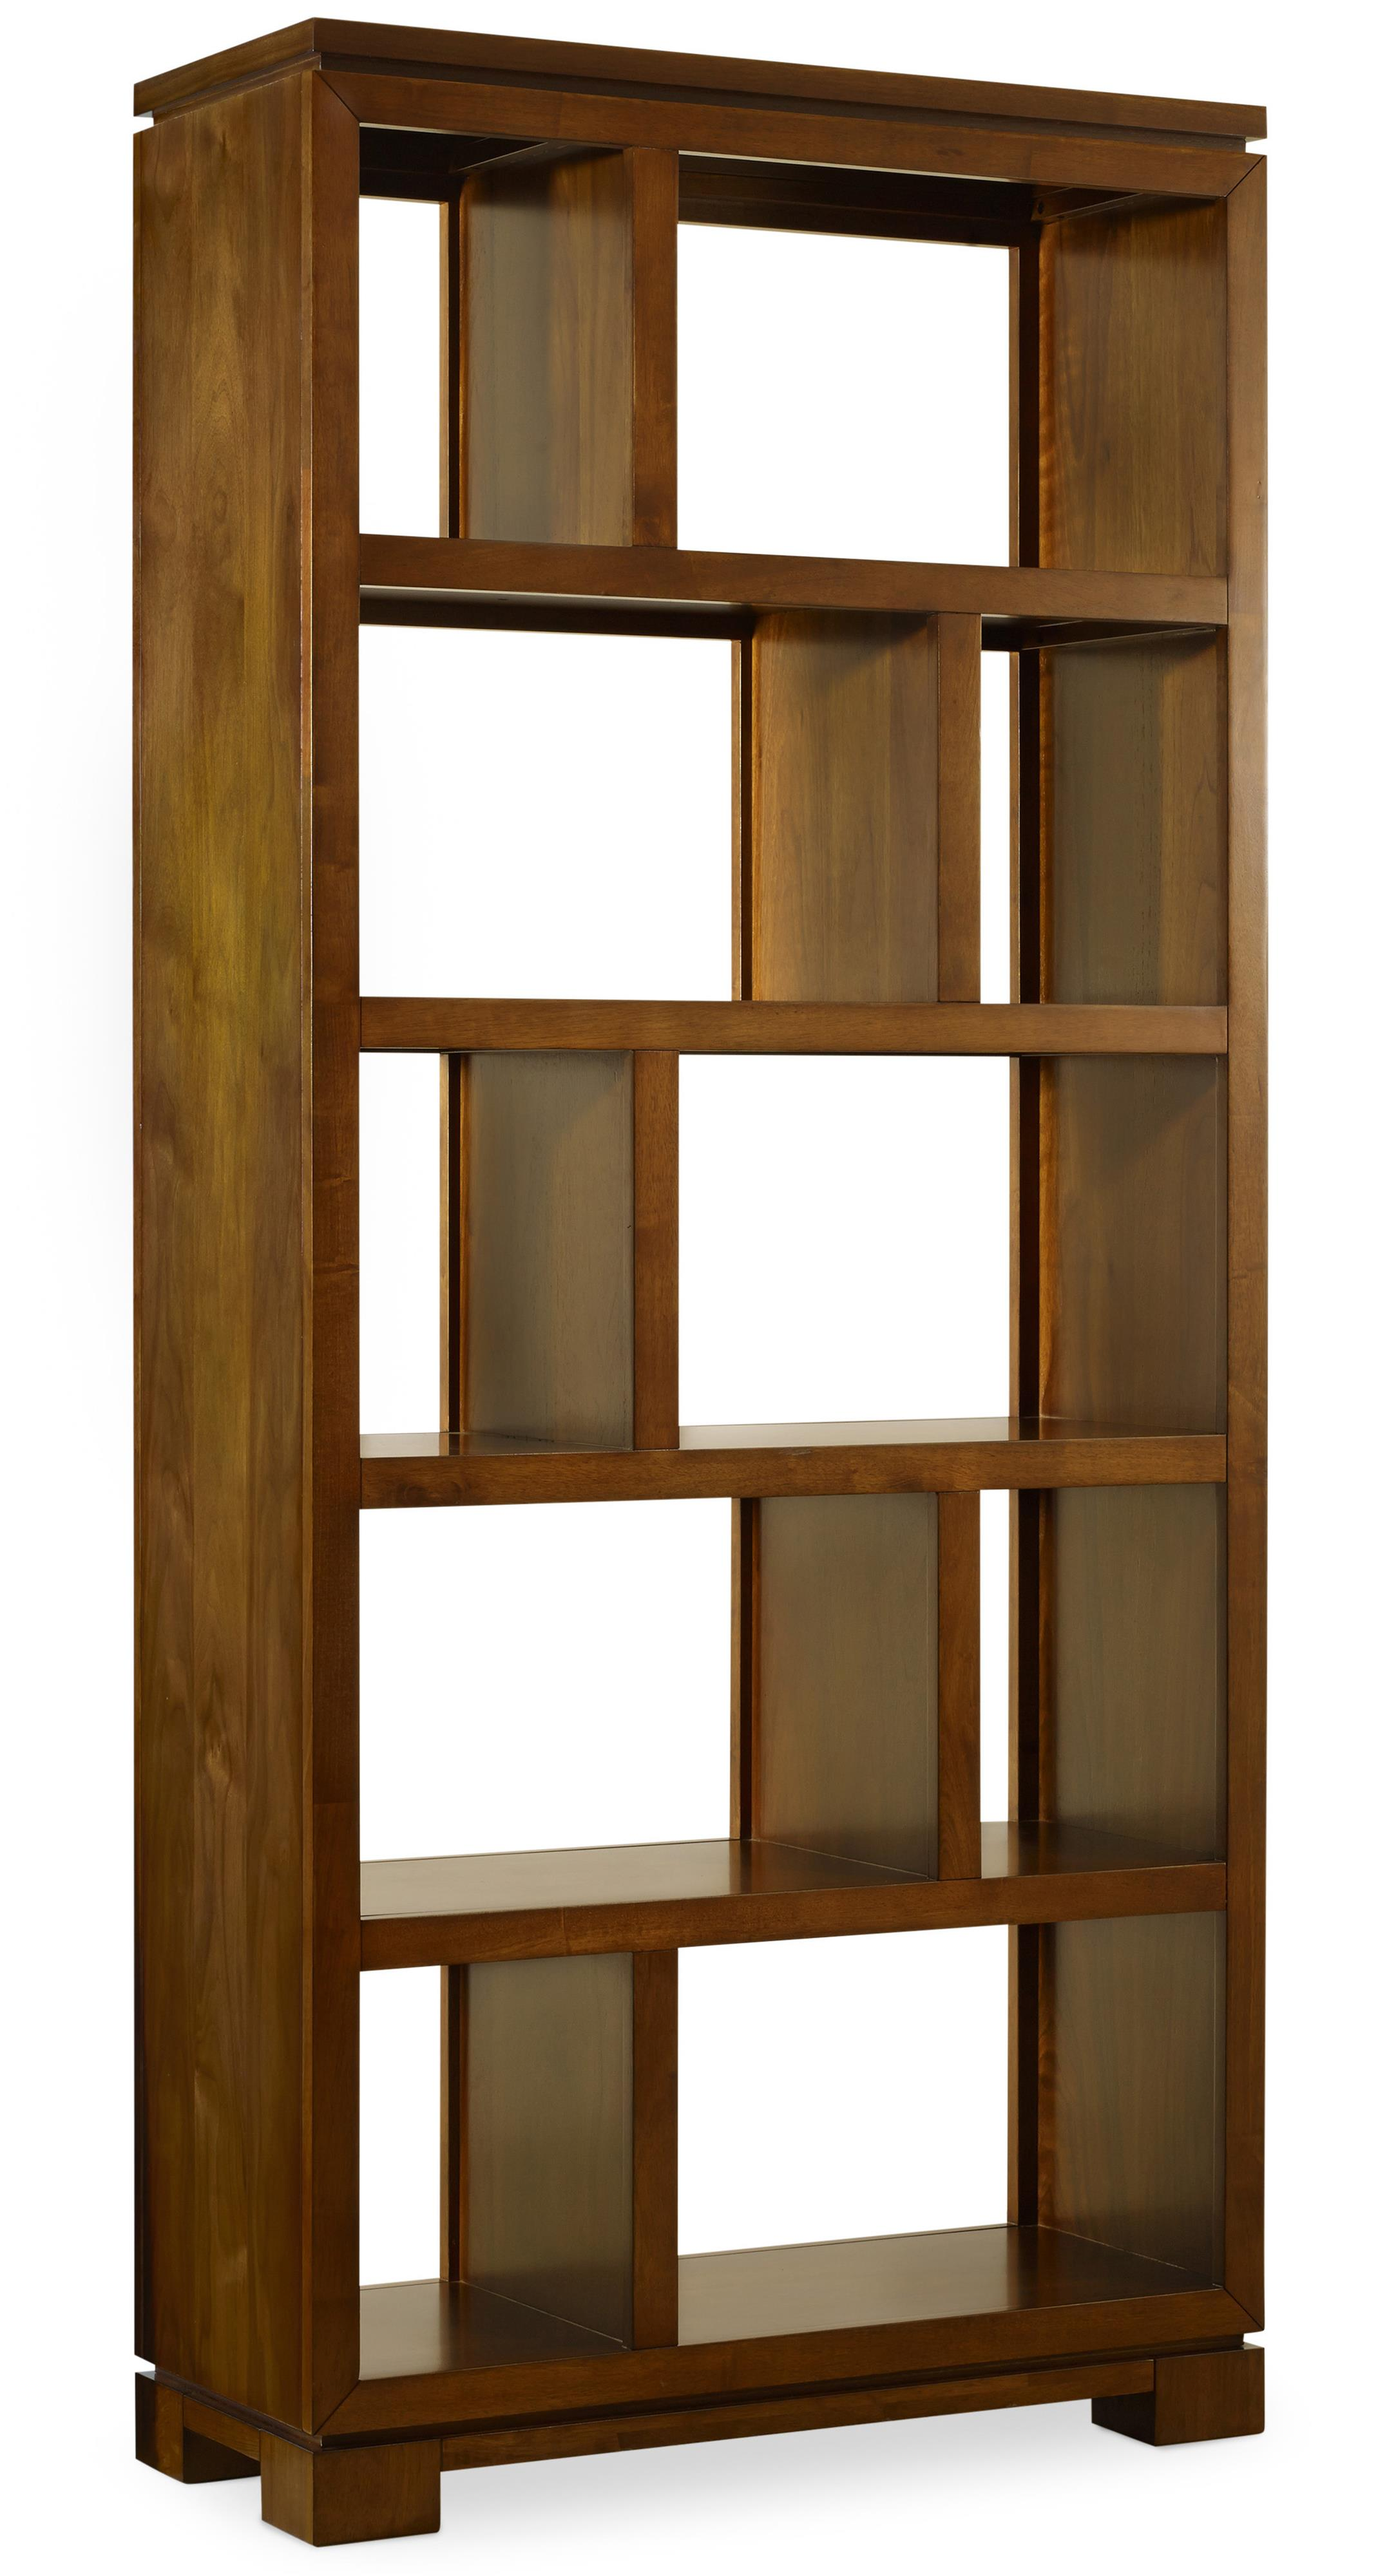 Hooker Furniture Viewpoint Room Divider With 10 Storage